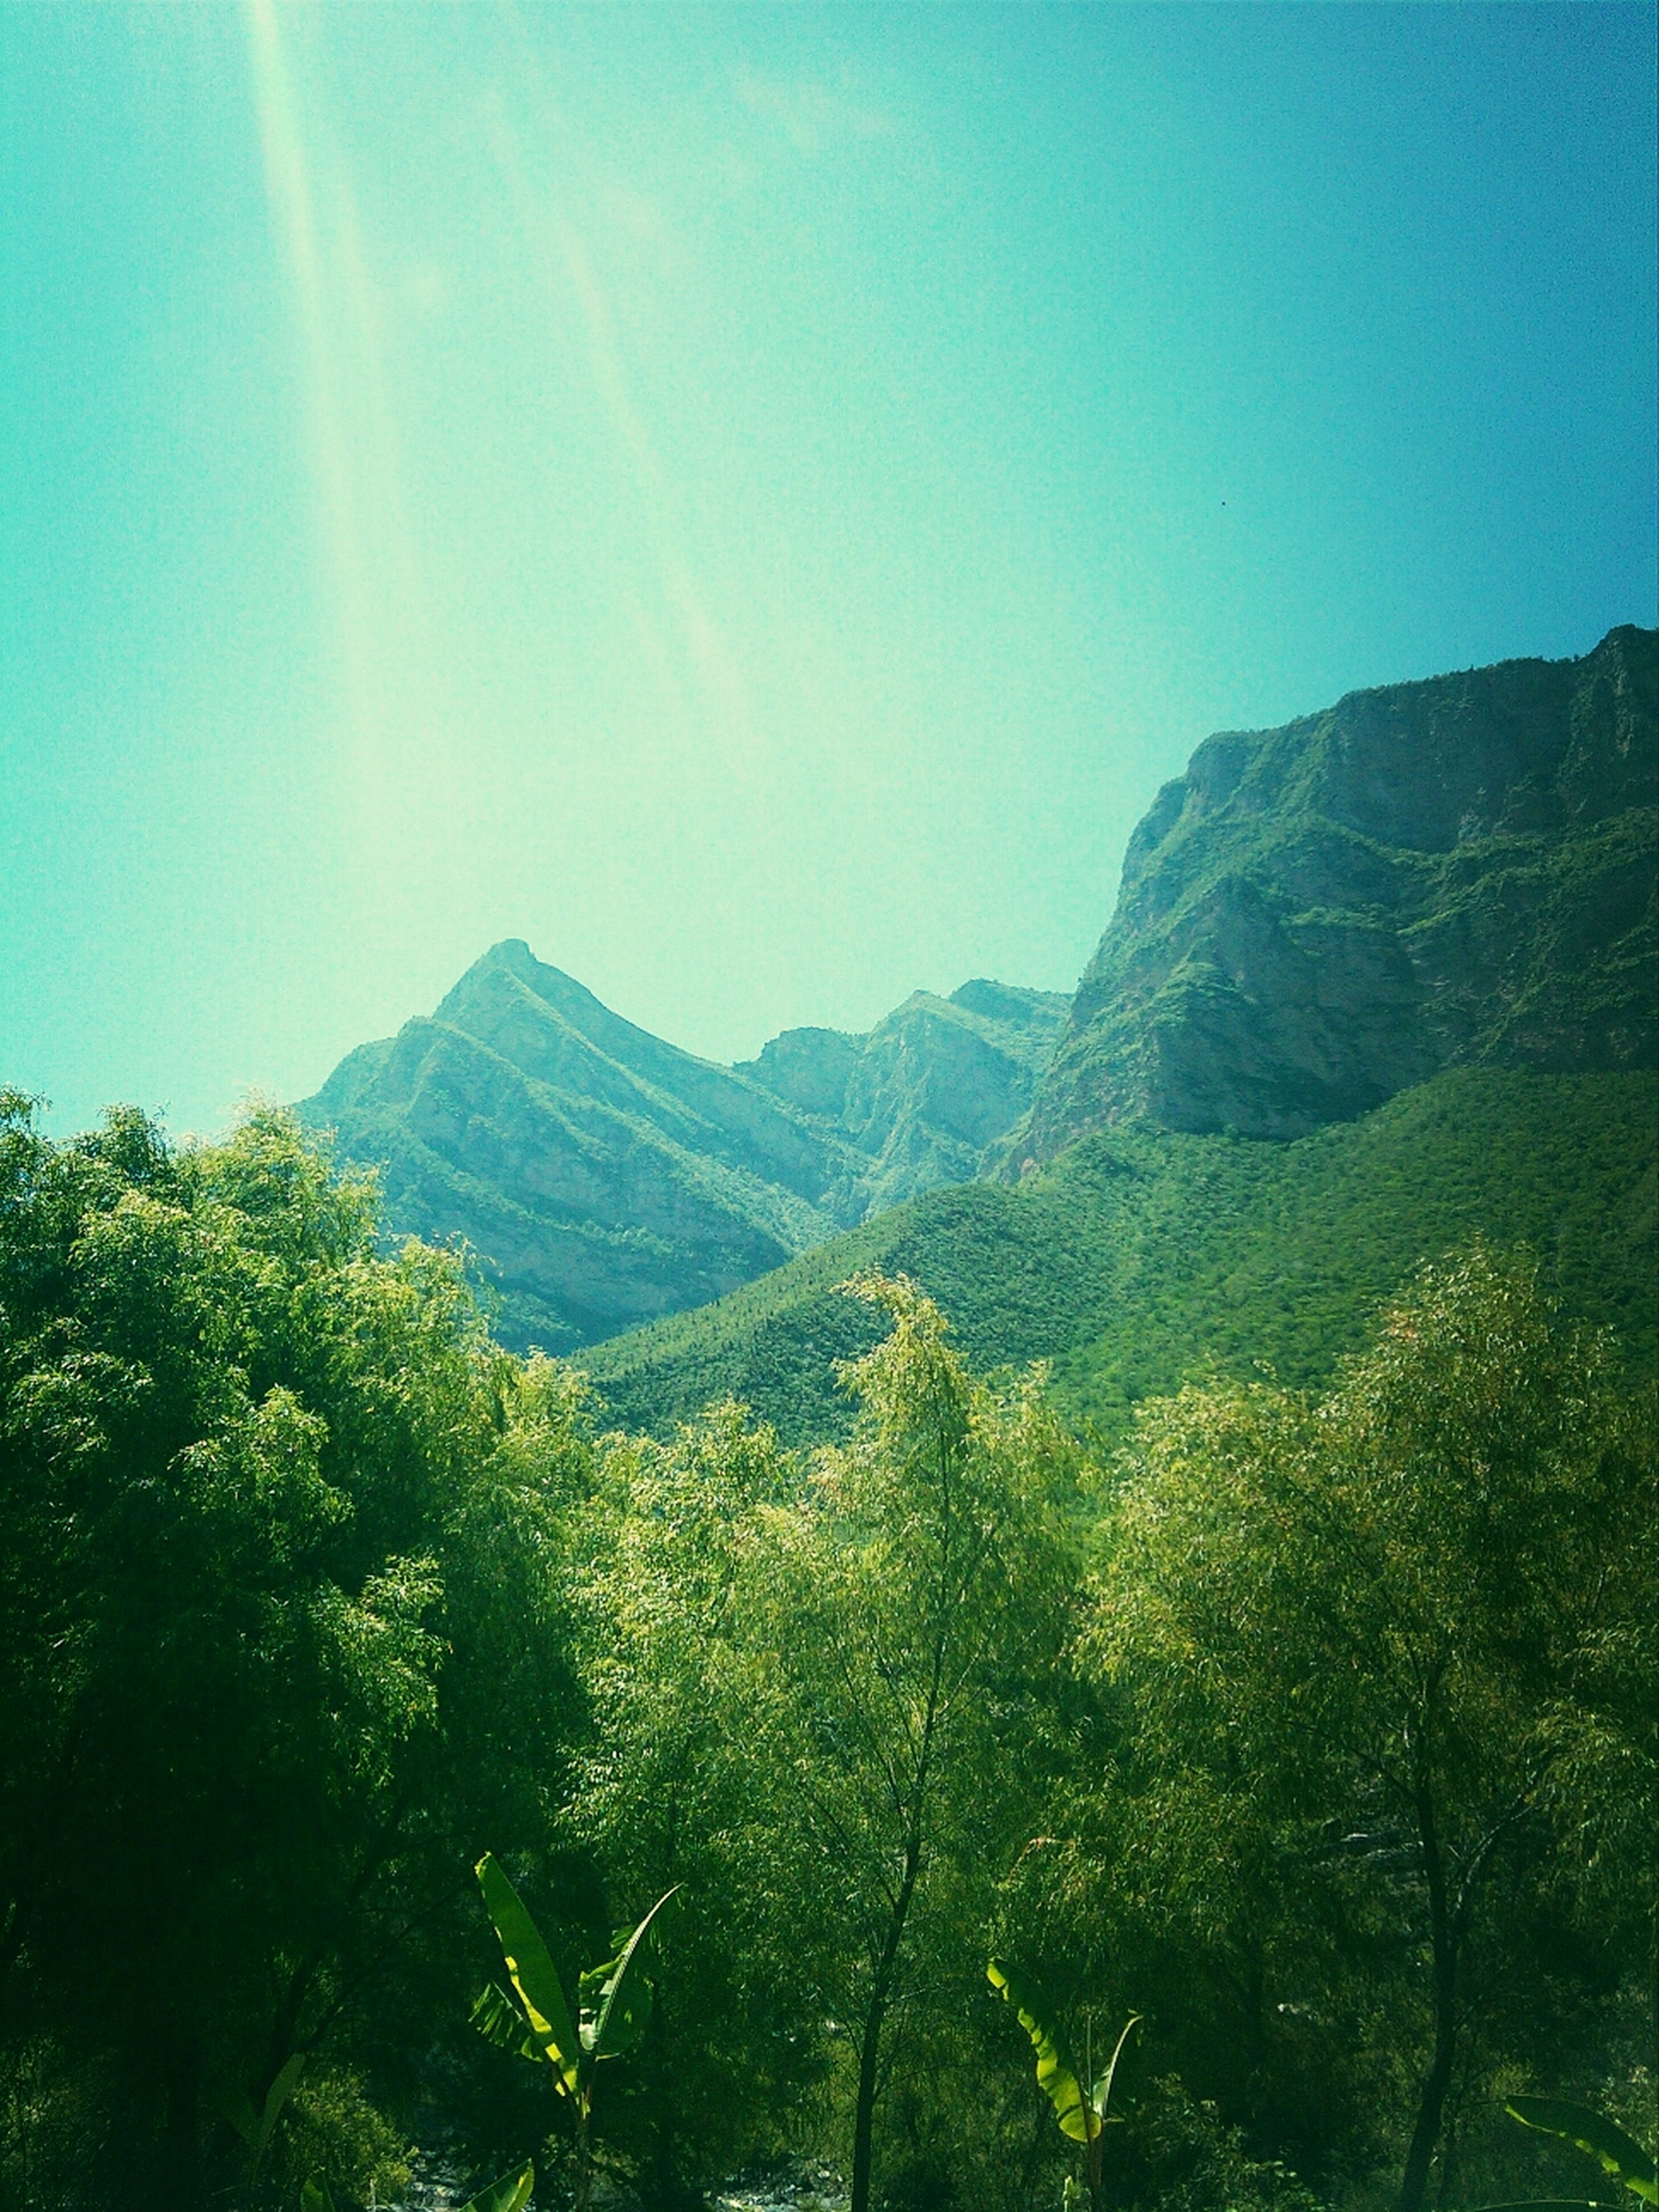 mountain, tranquil scene, tranquility, scenics, beauty in nature, tree, mountain range, blue, nature, clear sky, landscape, green color, growth, idyllic, non-urban scene, sunlight, lush foliage, sky, green, day